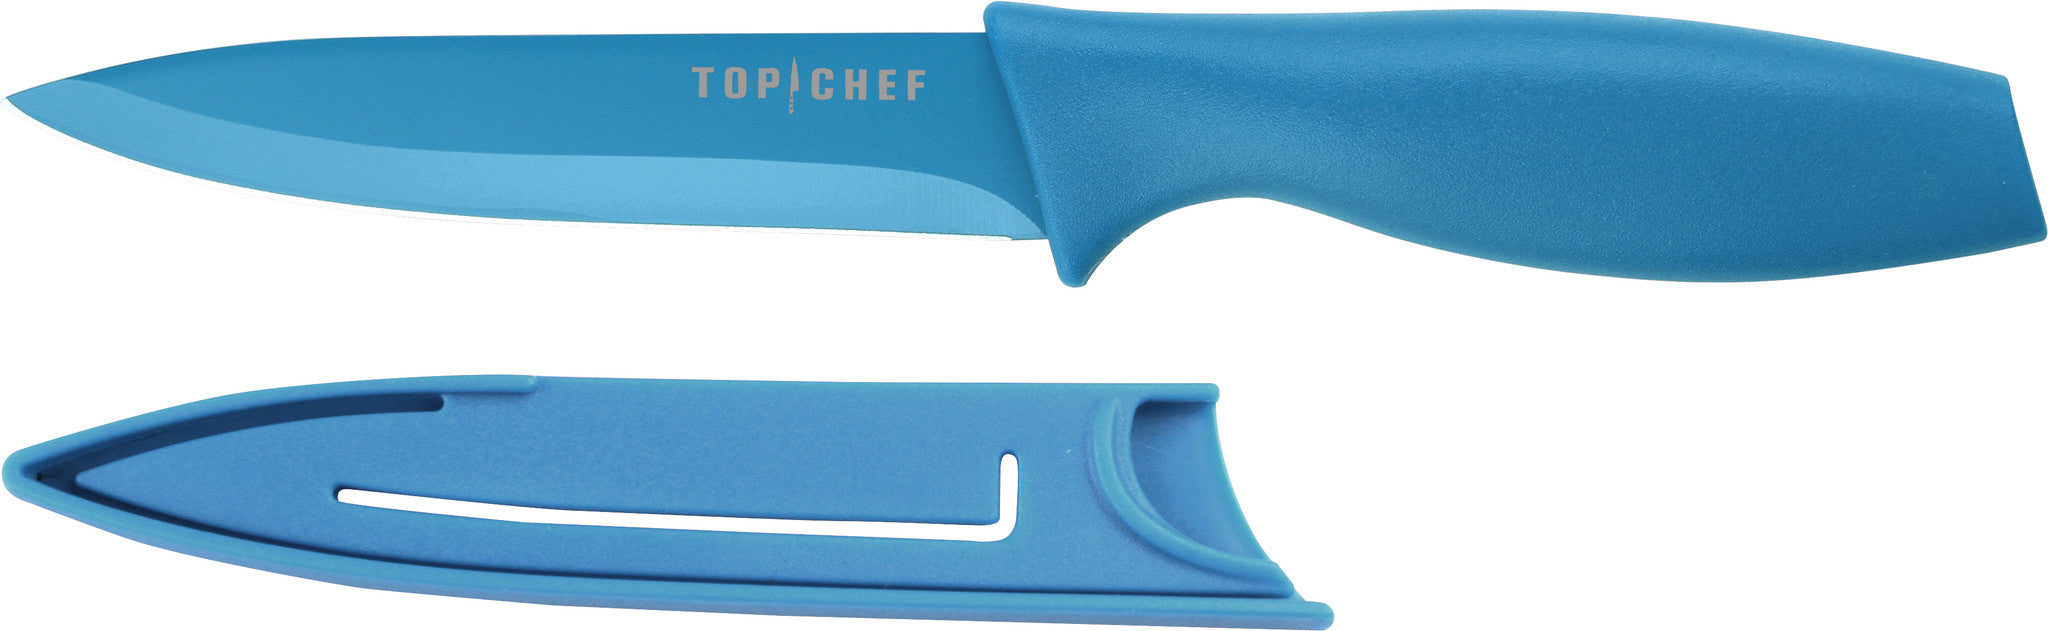 TOP CHEF® 6-Piece Kitchen Knife Set - Top Chef Cutlery by Master Cutlery